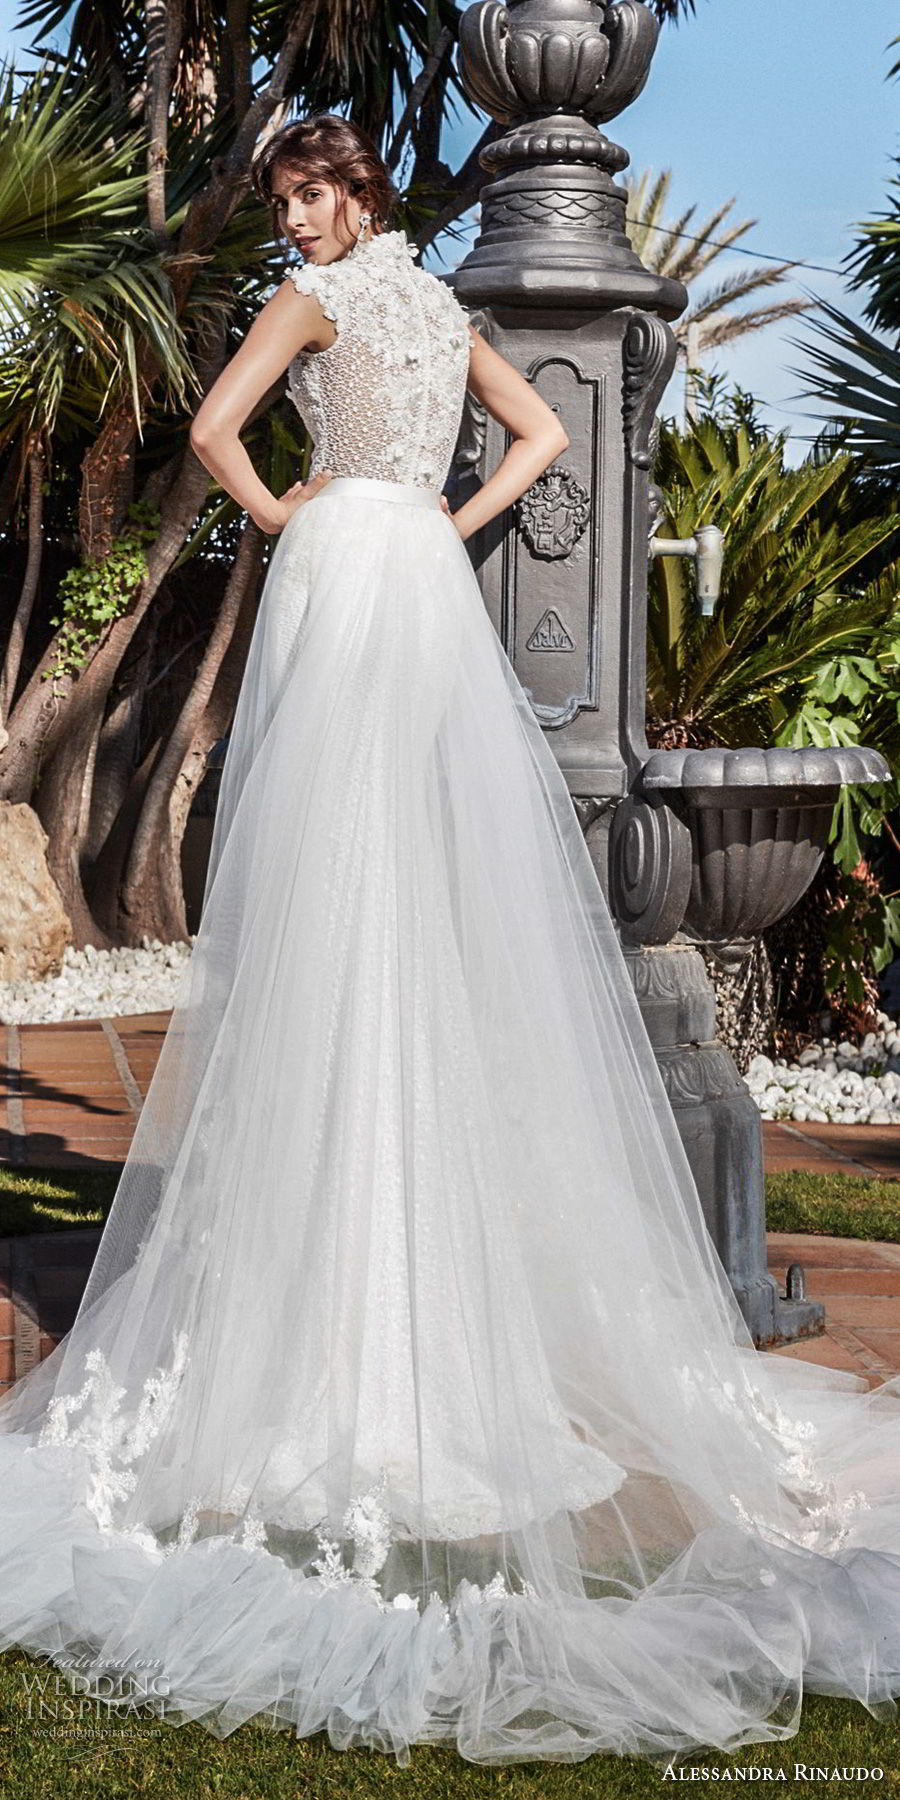 alessandra rinaudo 2018 bridal sleeveless deep v neck heavily embellished bodice elegant fit and flare wedding dress a line overskirt covered lace back chapel train (13) bv